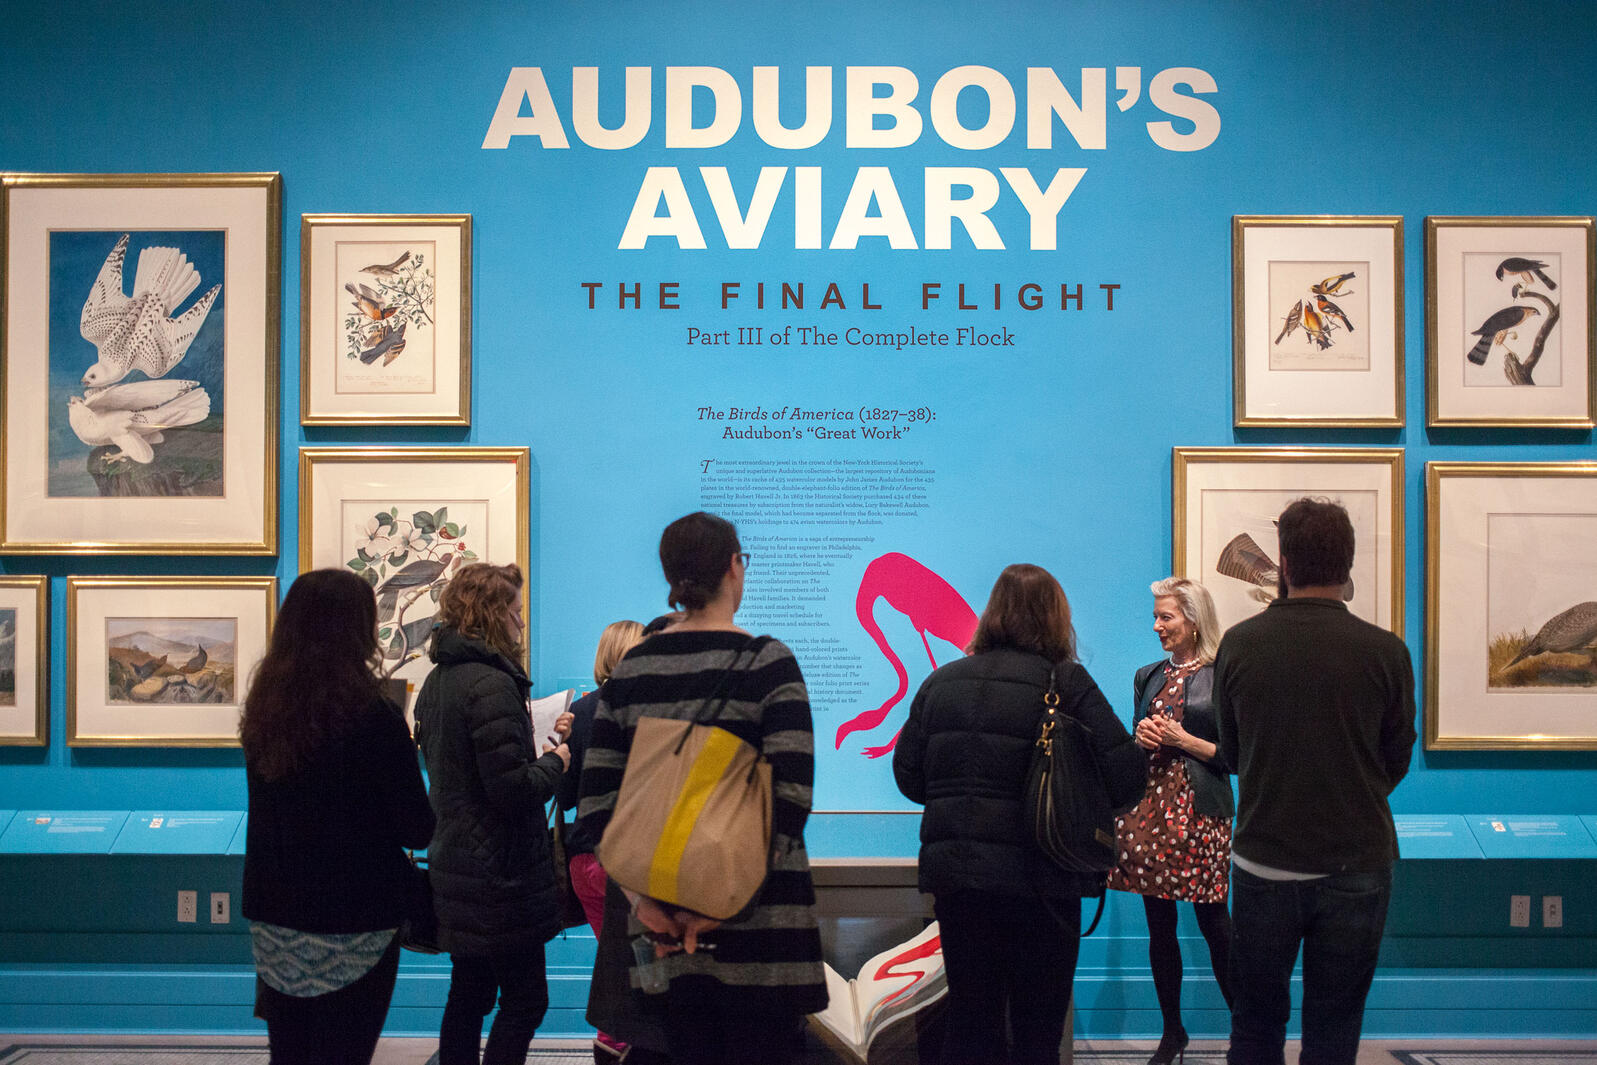 Curator of Drawings Roberta Olson gives a tour of Audubon's Aviary: Final Flight, during a press conference at the New-York Historical Society on March 5th. Camilla Cerea/National Audubon Society